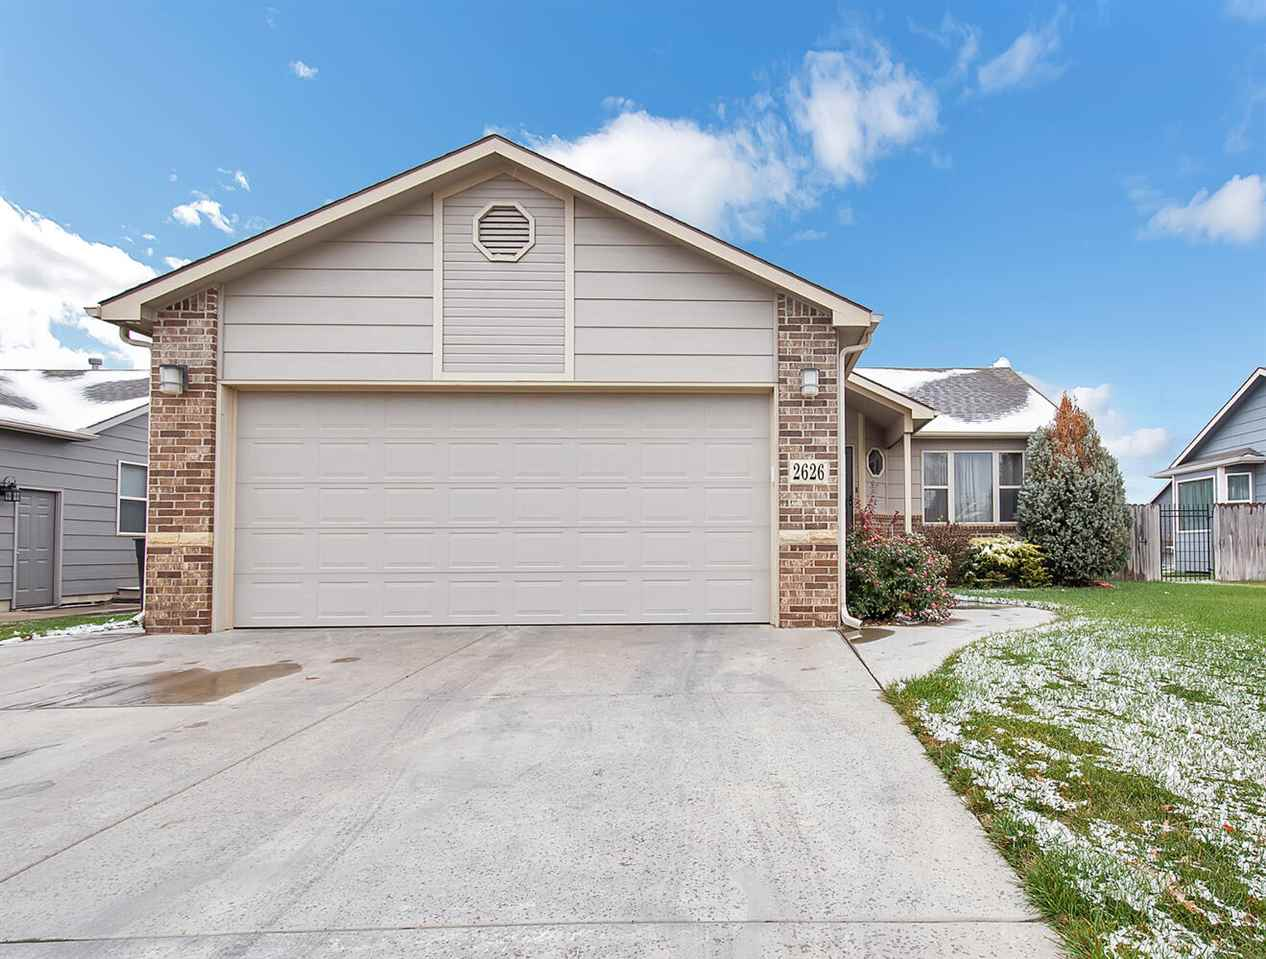 Sharp 3 bedrooms, 2 bath, 2 car garage ranch home in Park City.  Updated flooring in kitchen and din